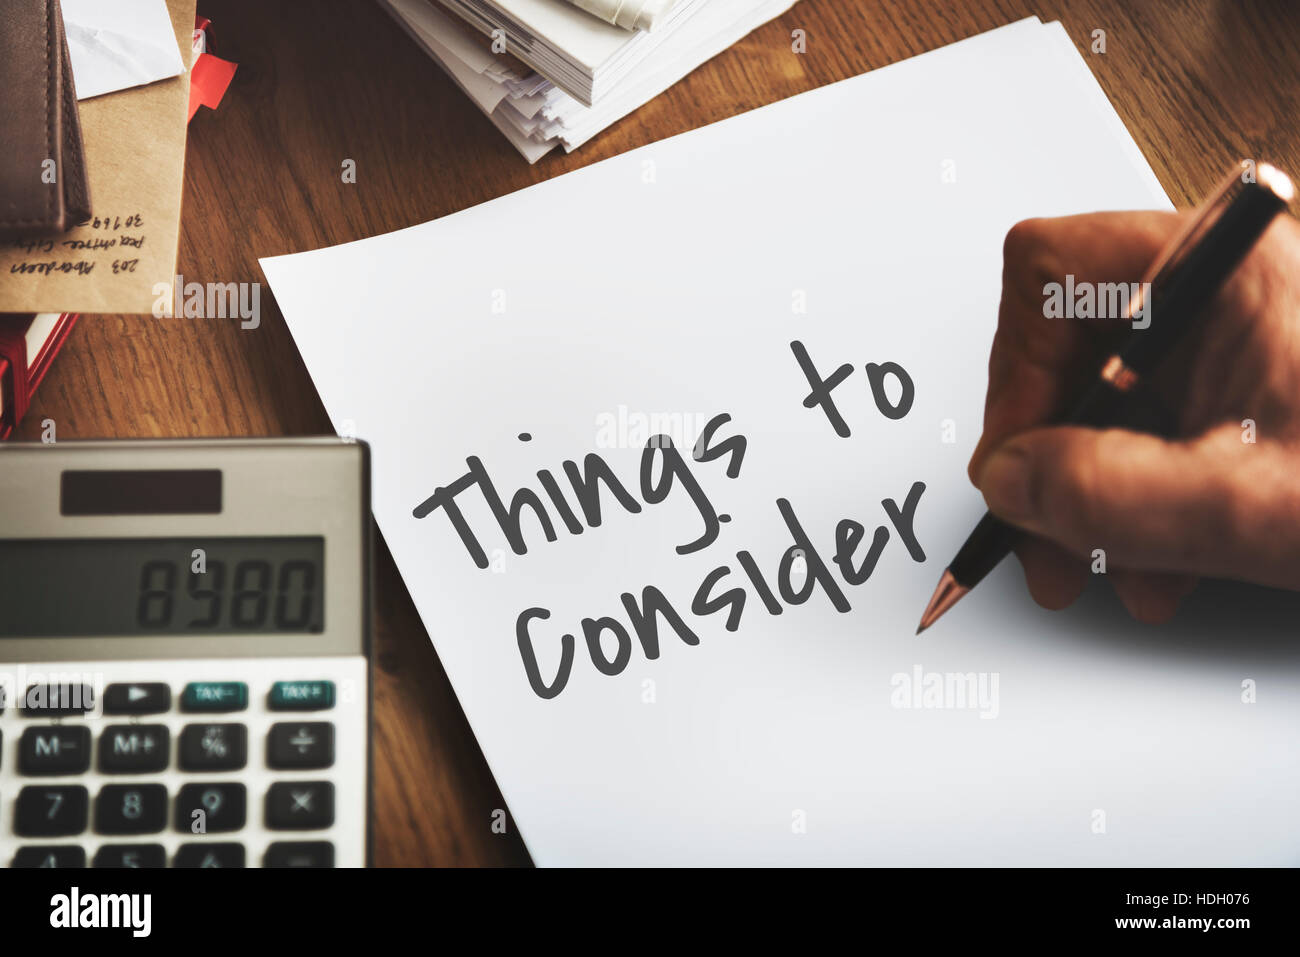 Things To Consider Work Concept - Stock Image